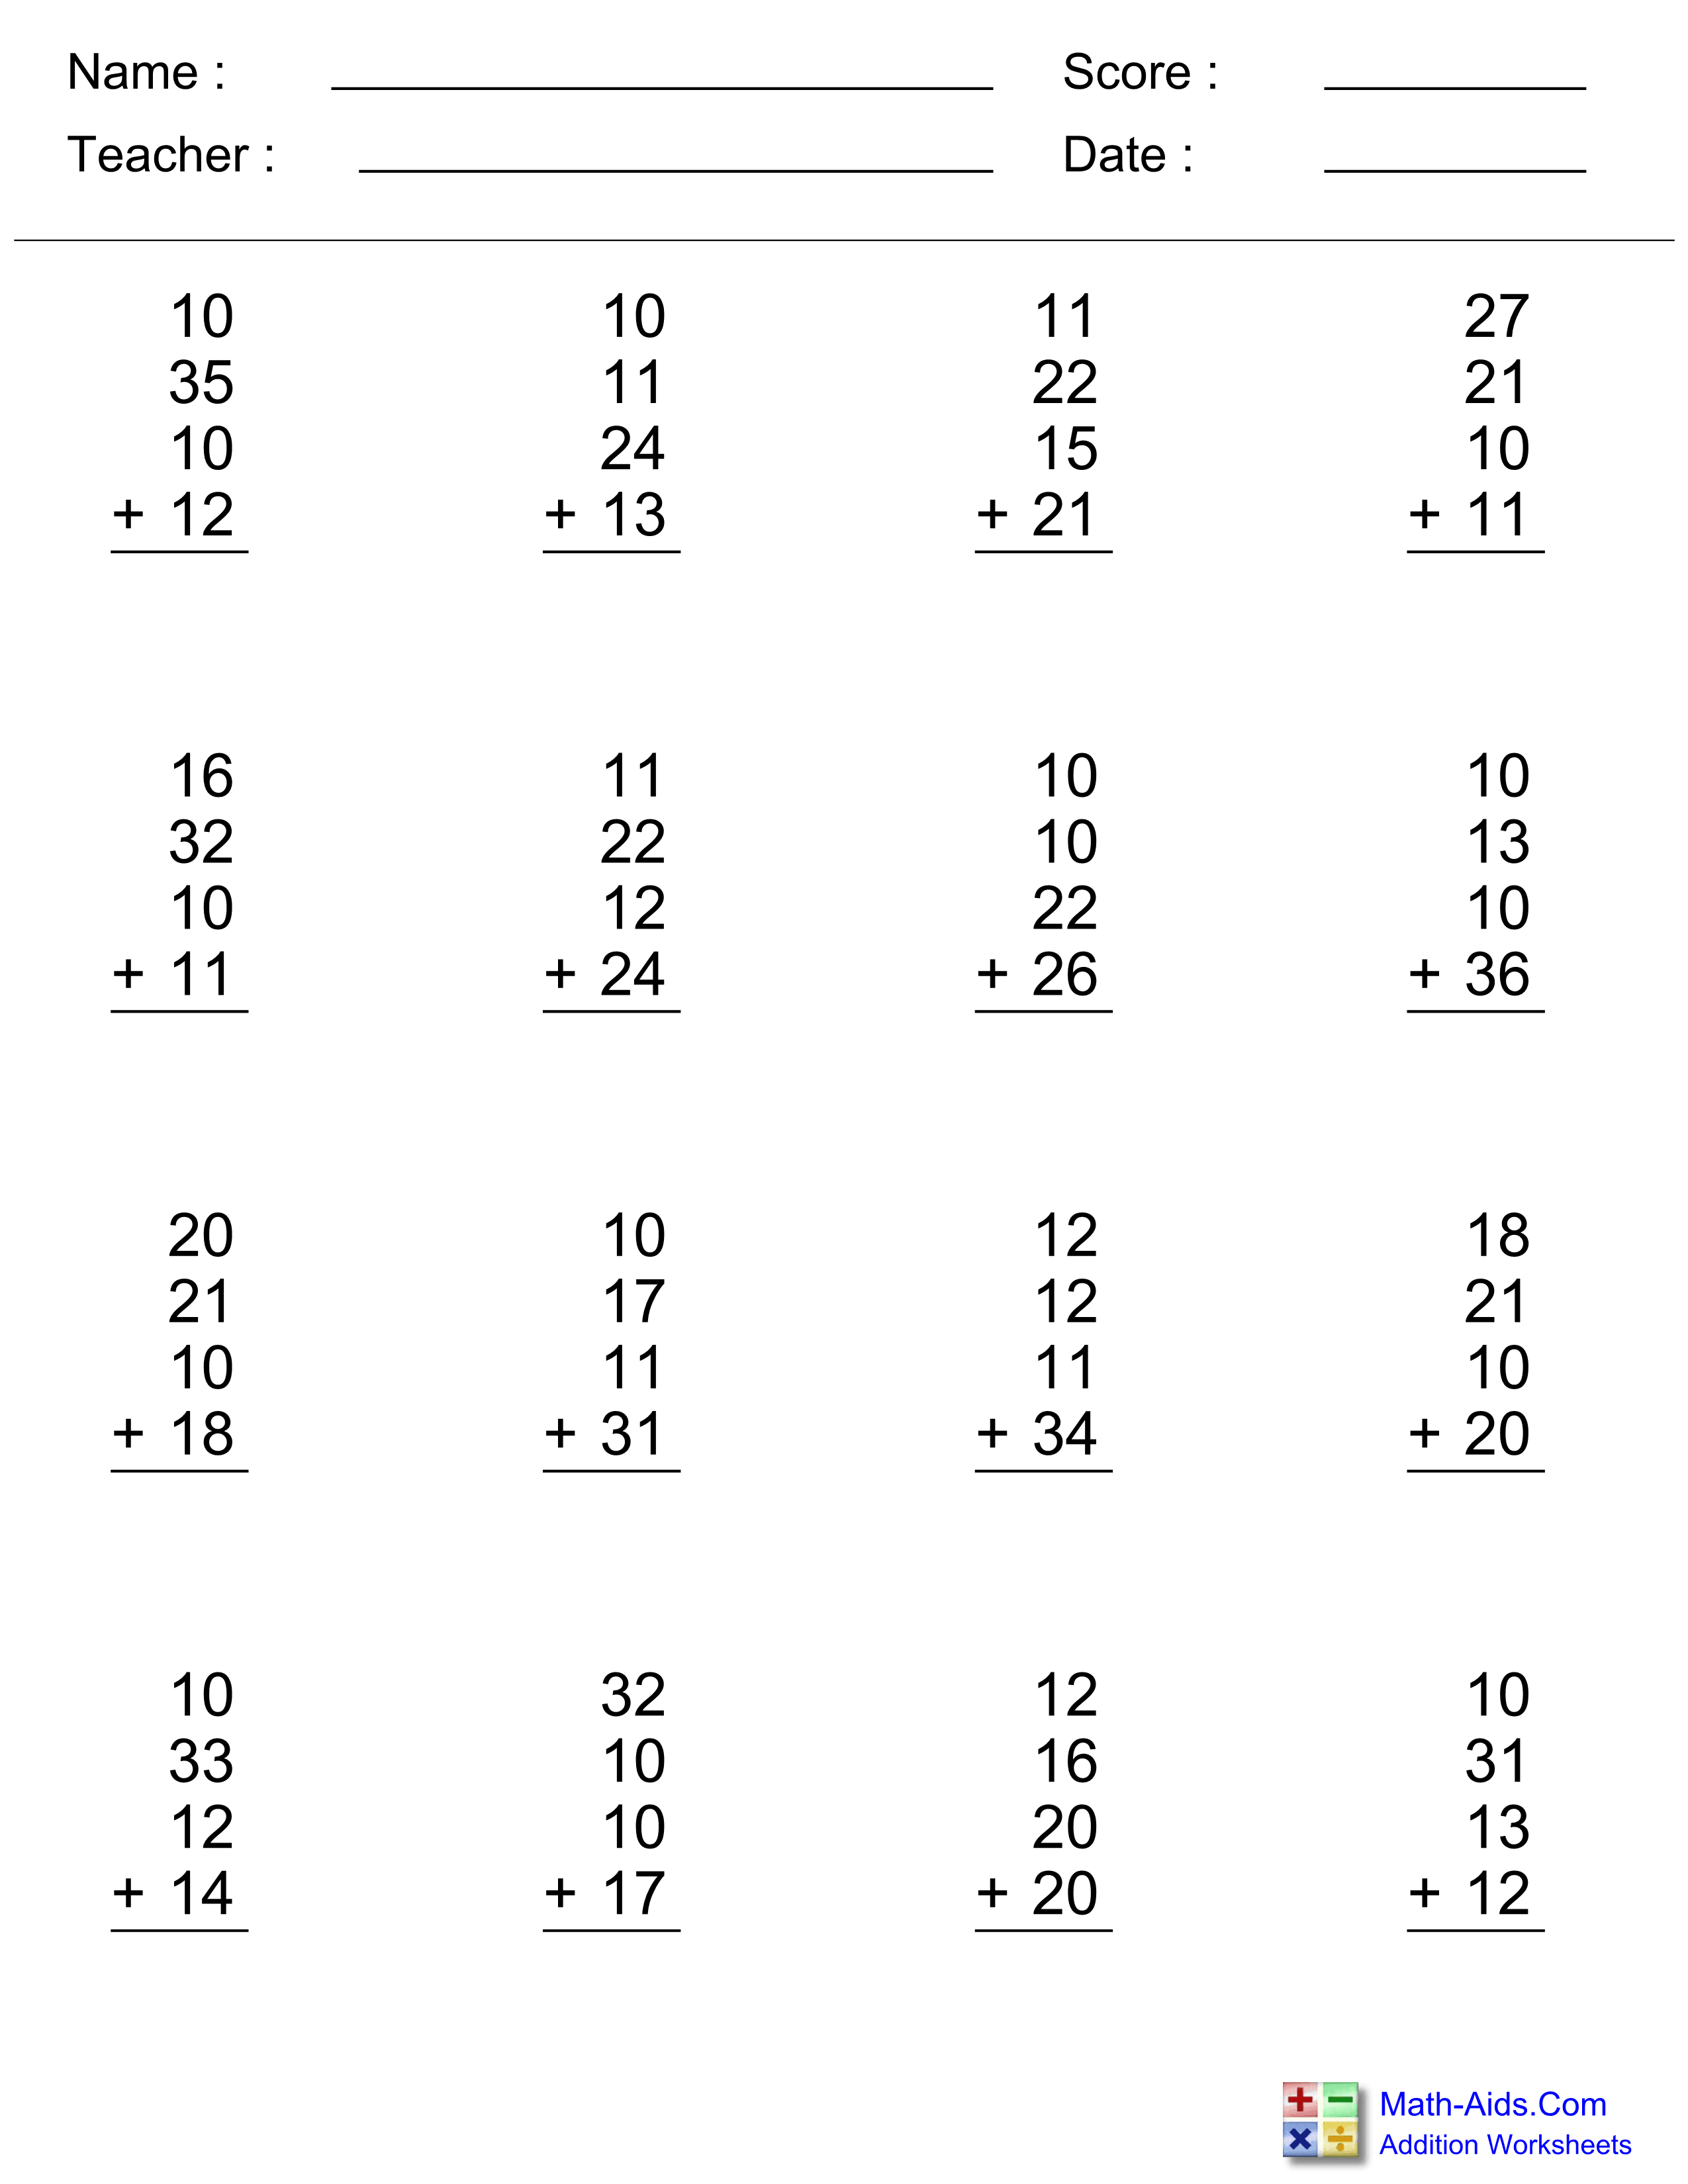 Addition Worksheets | Dynamically Created Addition Worksheets | Free Printable Addition Worksheets